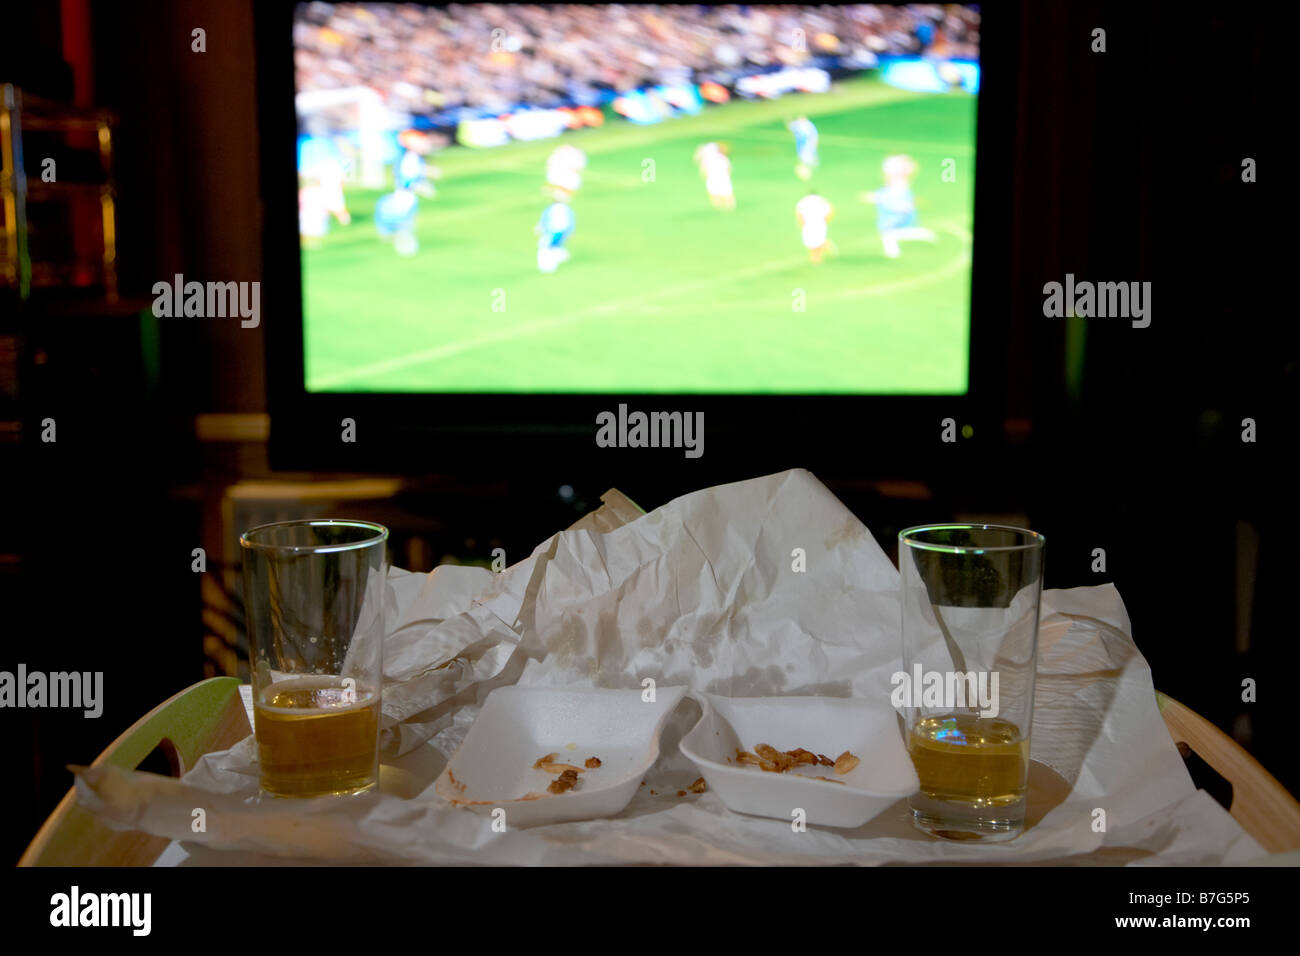 remains of a takeaway meal for two and glasses of beer on a tray in front of soccer on the tv in the living room - Stock Image